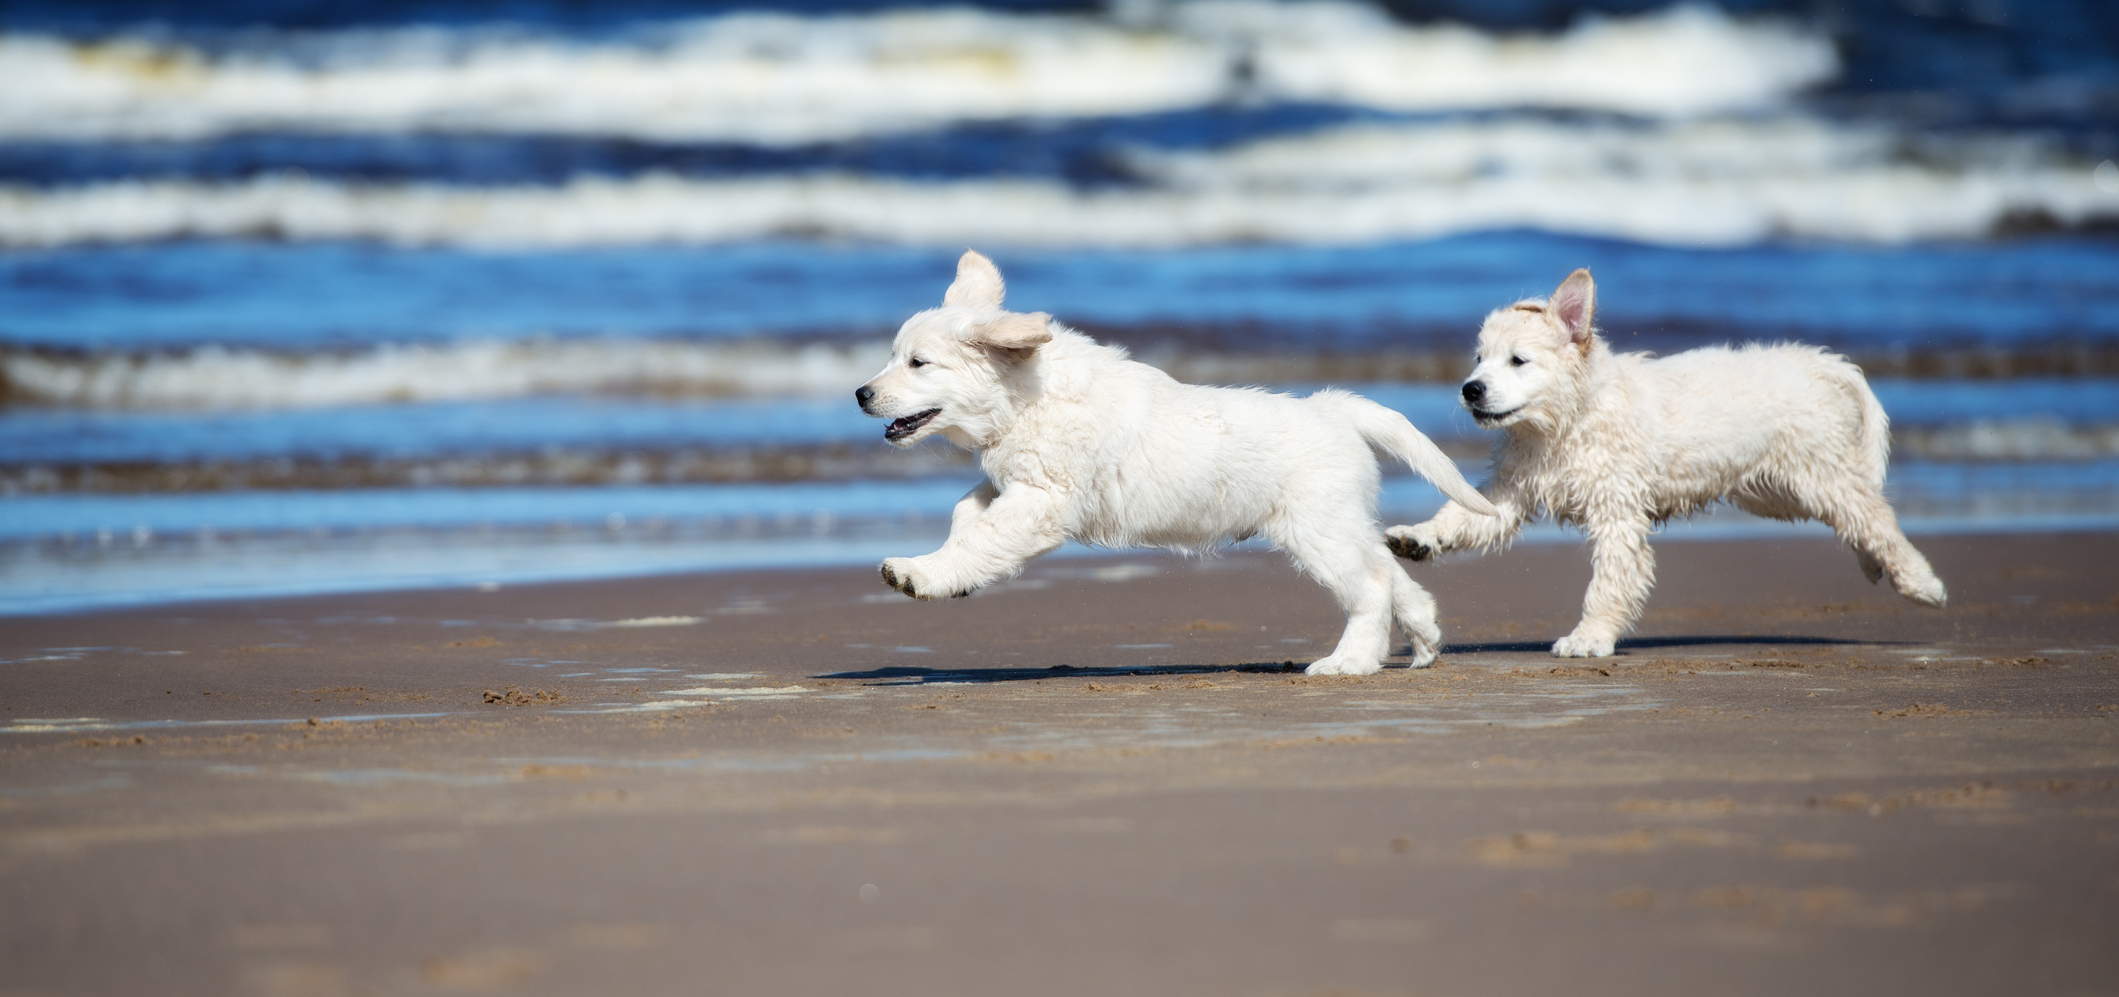 golden retriever pups chasing each other on a beach with the ocean in the background